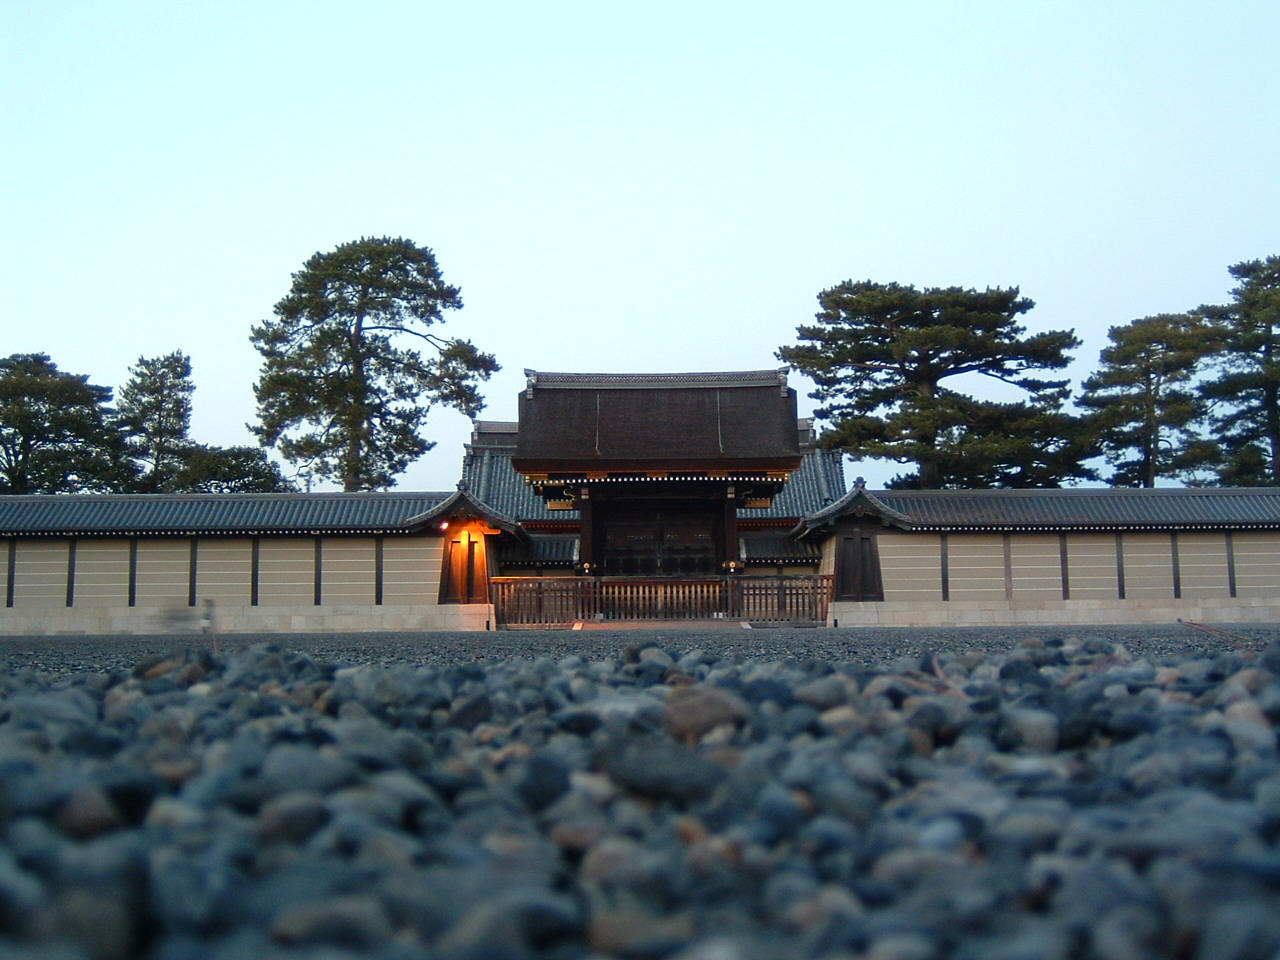 The Kyoto Imperial Palace by hitokirivader